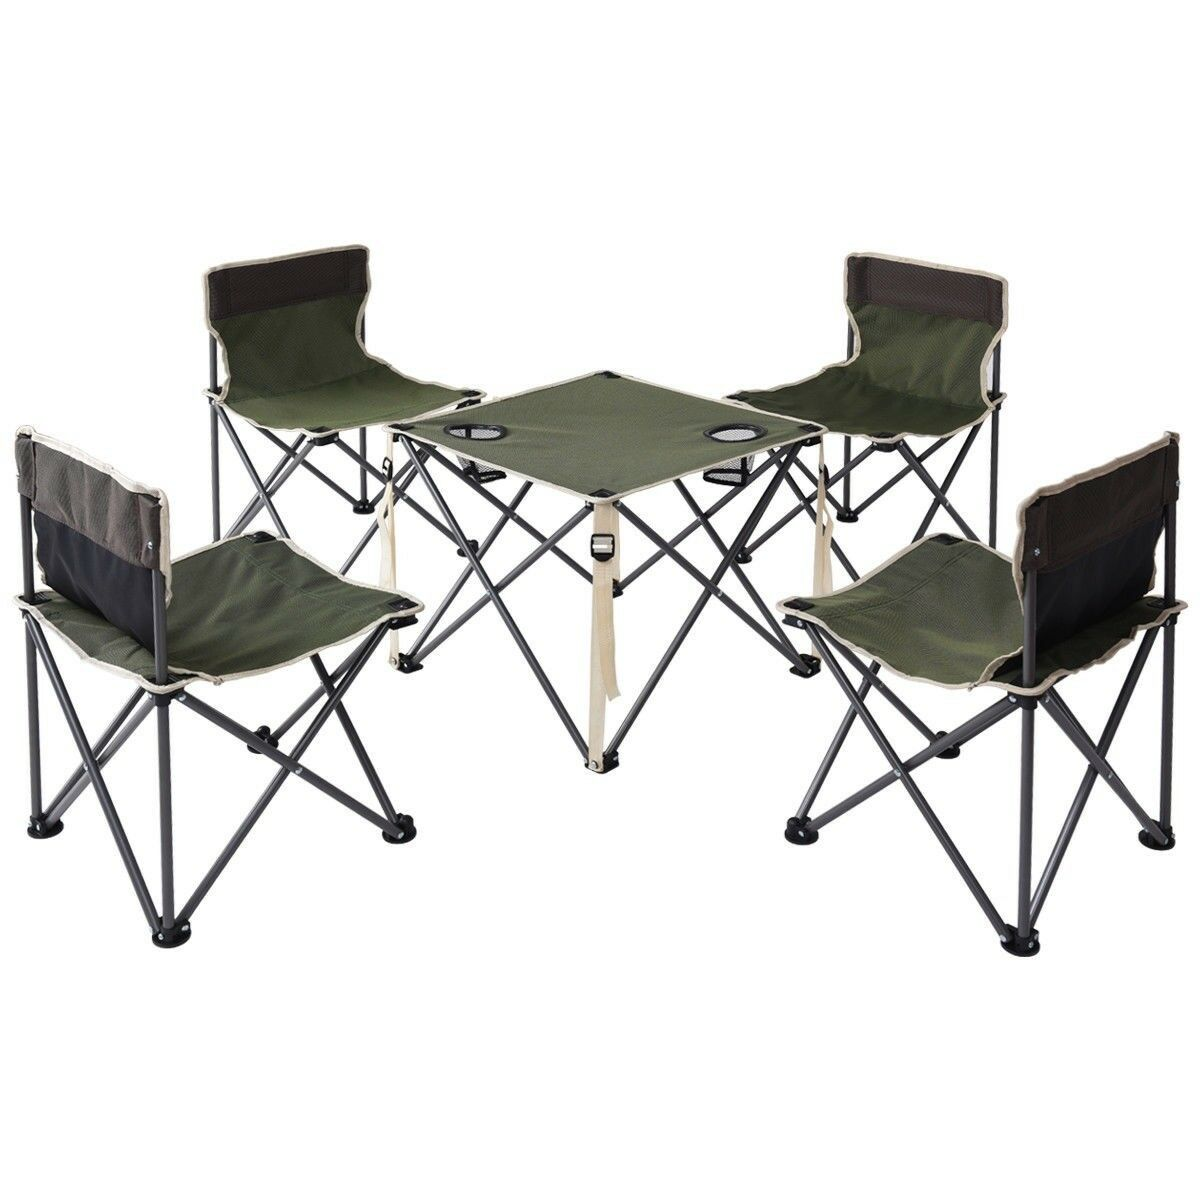 Folding Camping Table Chairs Portable Picnic Foldable Seats Outdoor Carrying Bag